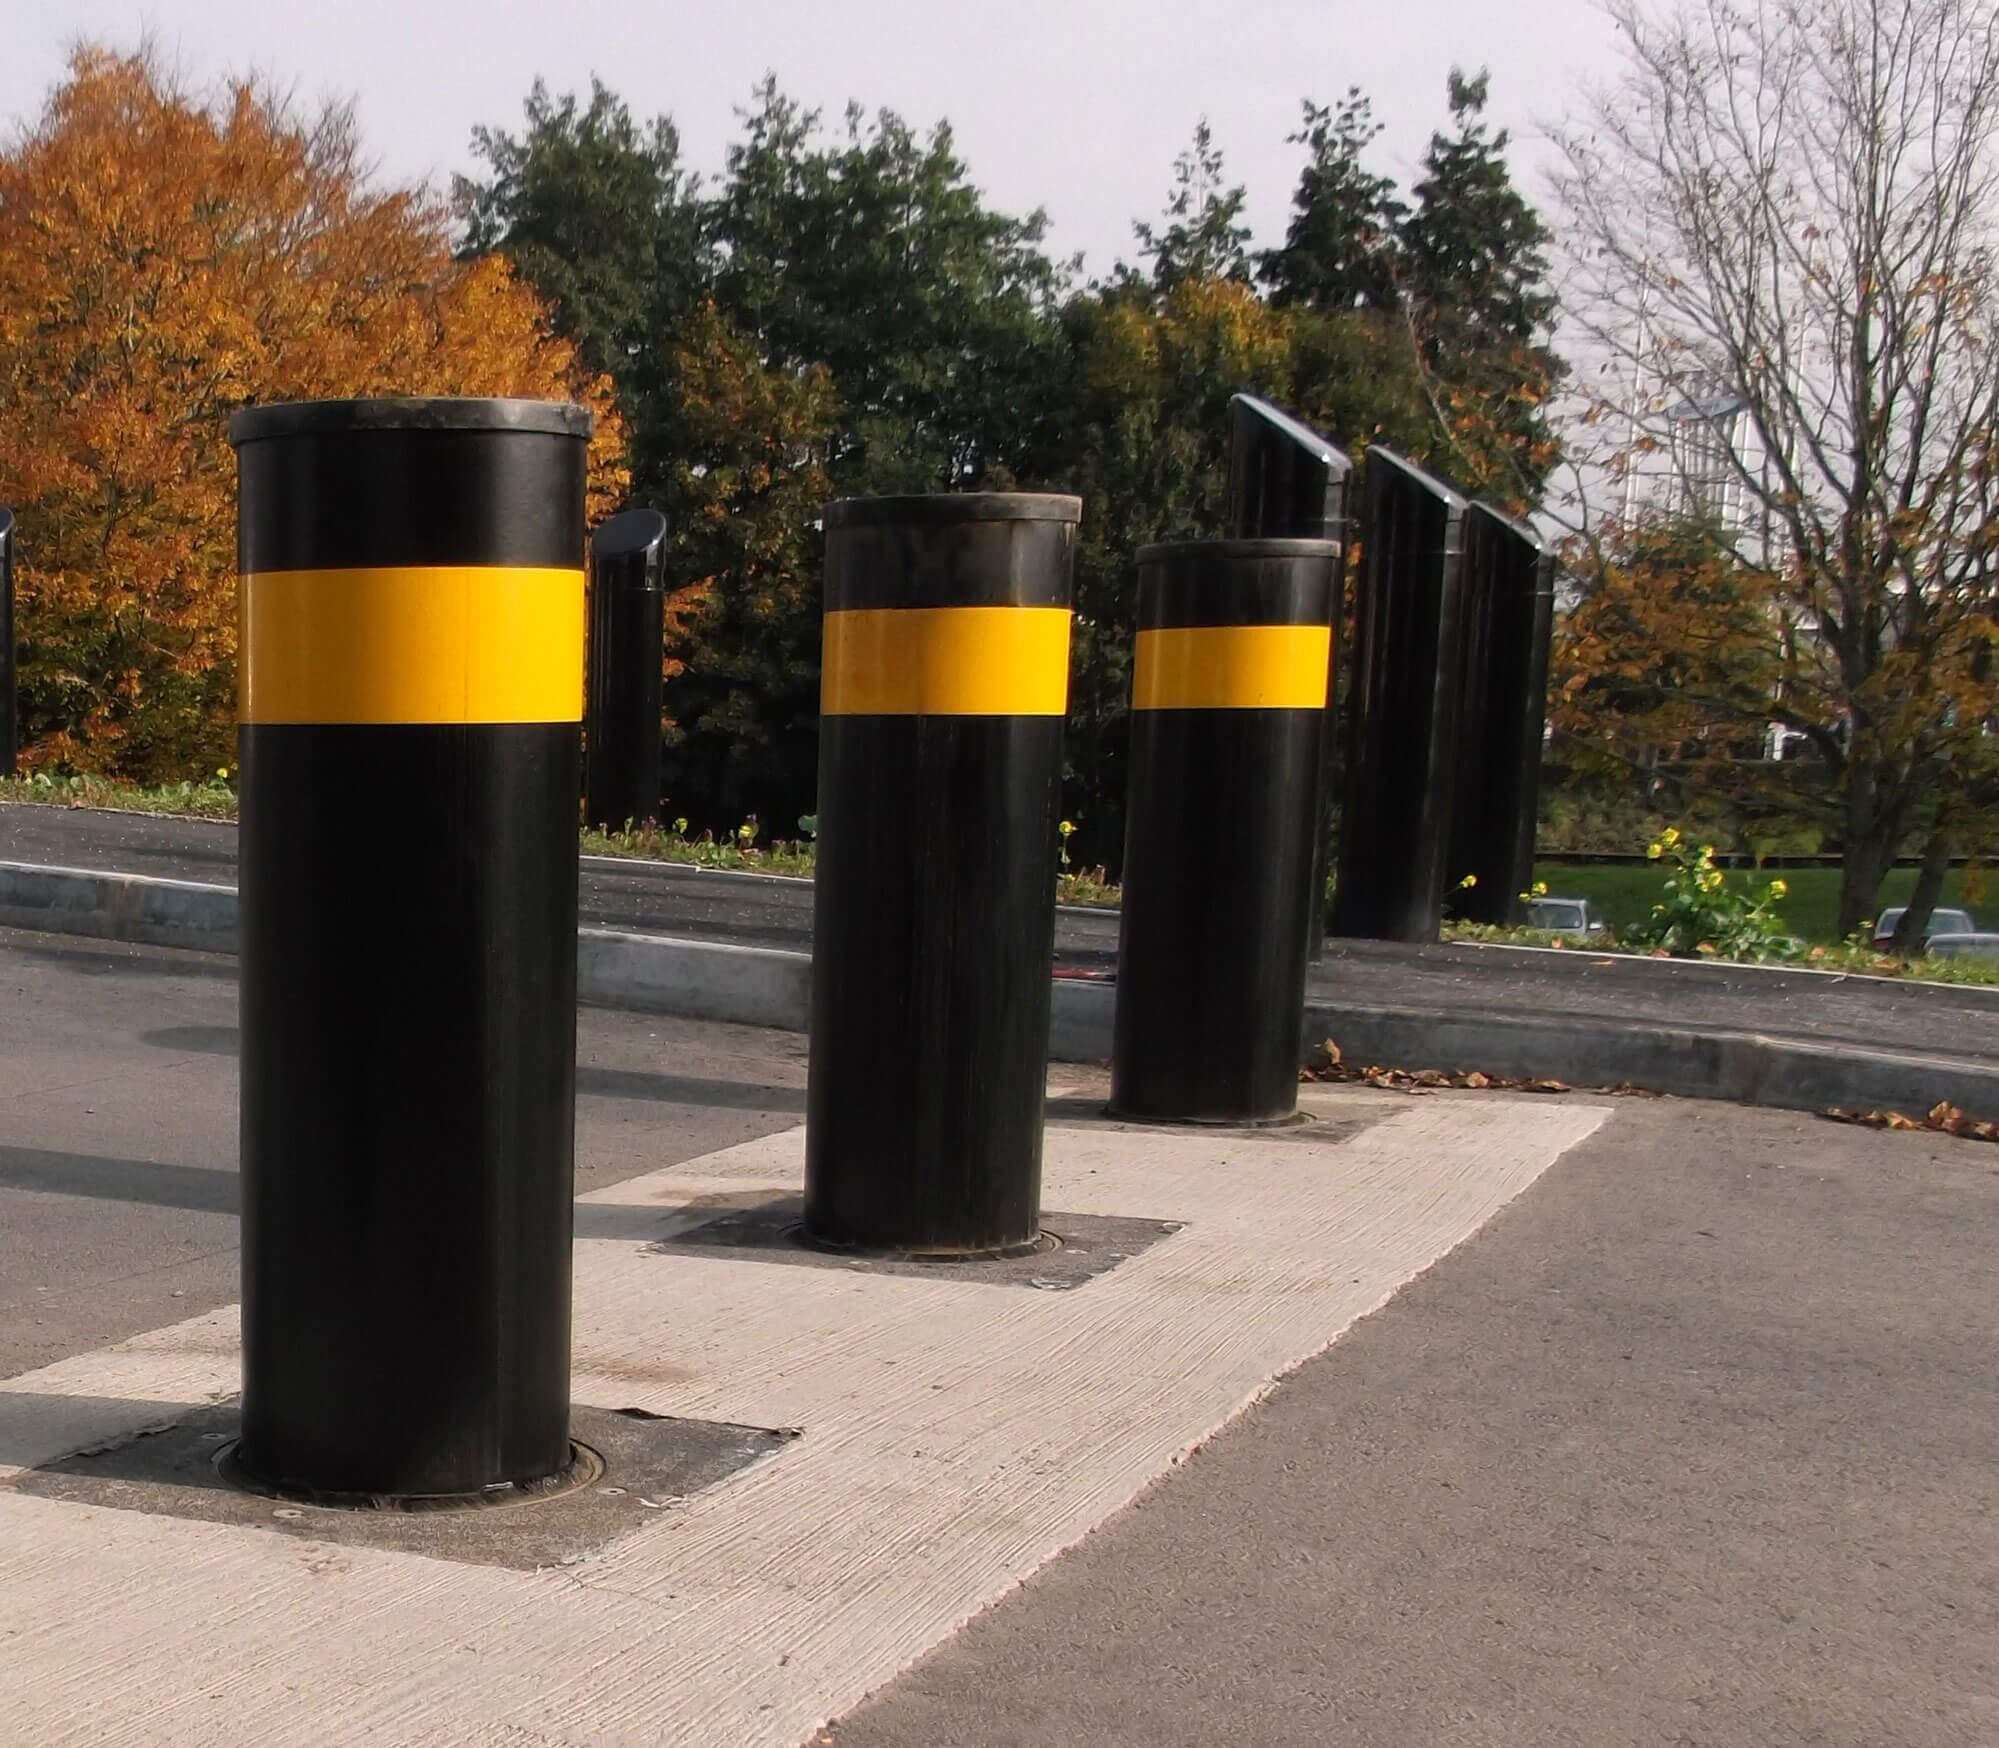 Senator 273 Performa-Cast Polymer PAS 68 Bollard (VED/0024 and VED/0014)